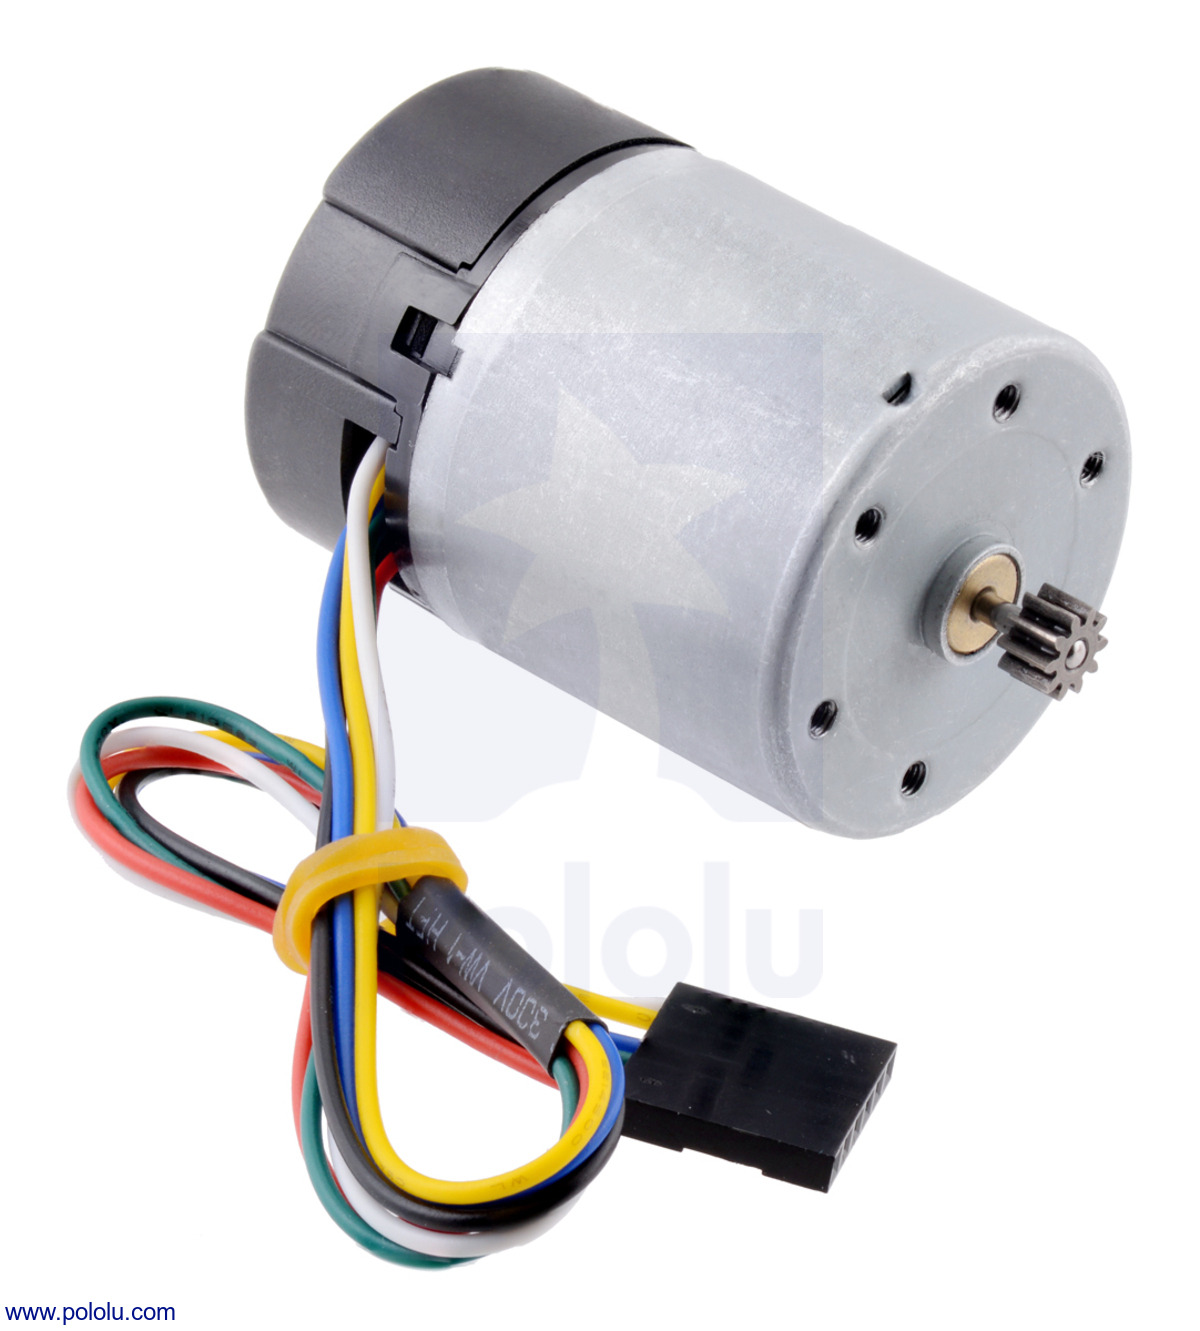 Motor with 64 CPR Encoder for 37D mm Metal Gearmotors (No Gearbox, Spur  Pinion)